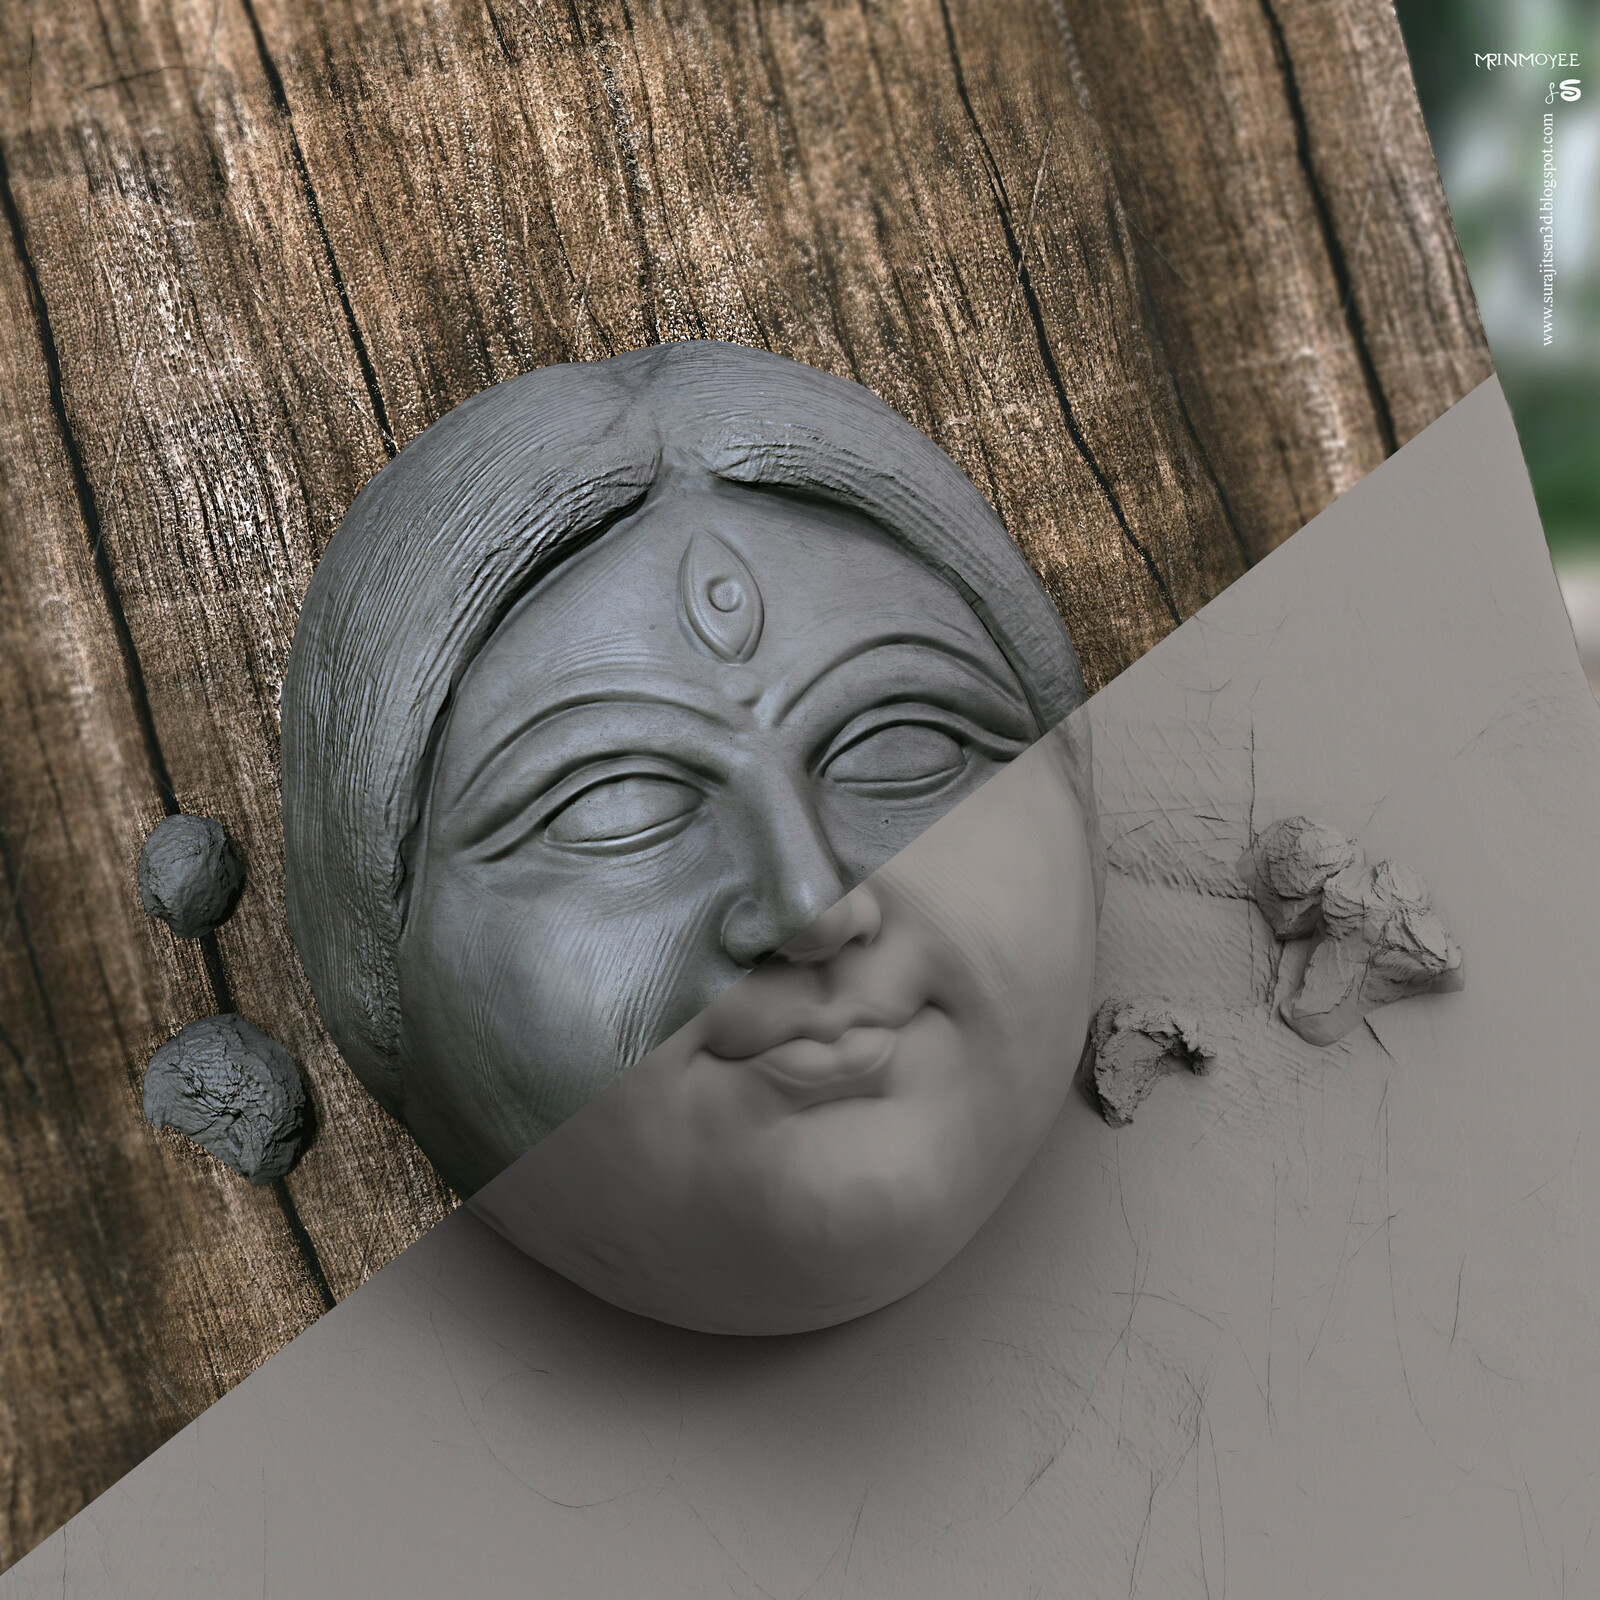 Mrinmoyee Digital Sculpture Tried to make a form of traditional clay Sculpture (blocking). Inspired by Traditional Sculpting in Kolkata Kumortuli, India. Dedicating this Sculpture to Goddess Durga.